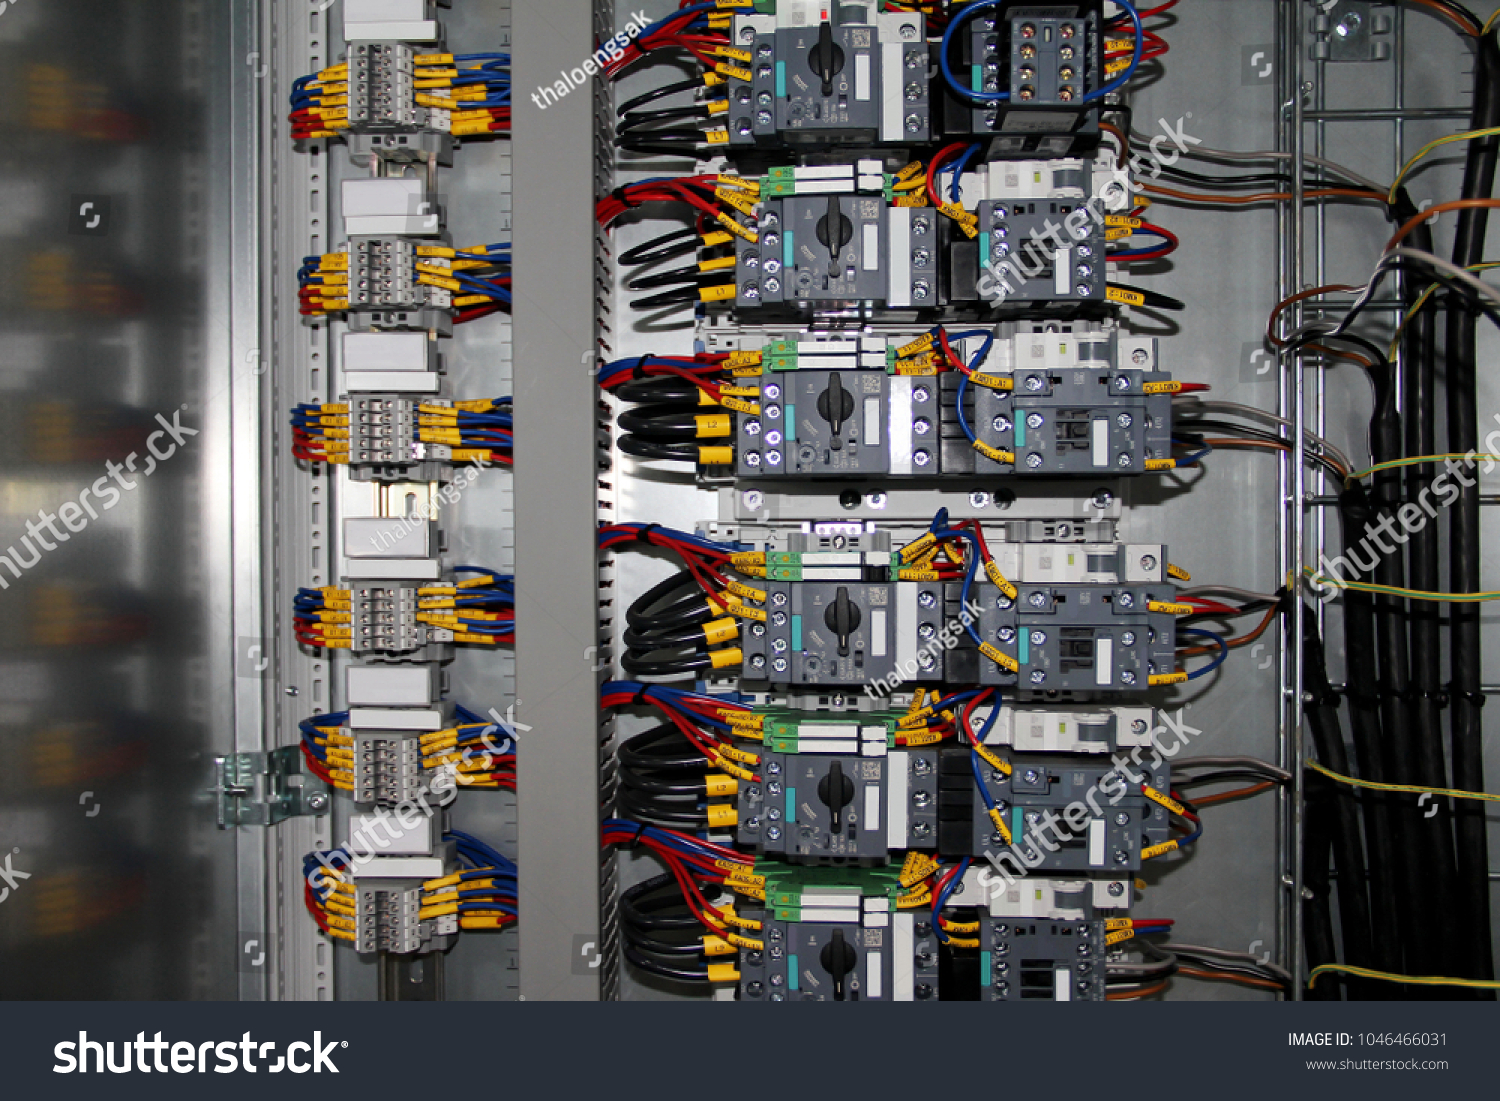 Electric Wiring Circuit Breakersboxcontrol Panel Fusesrails Low Basics With Fusesrailslow Voltage Meters